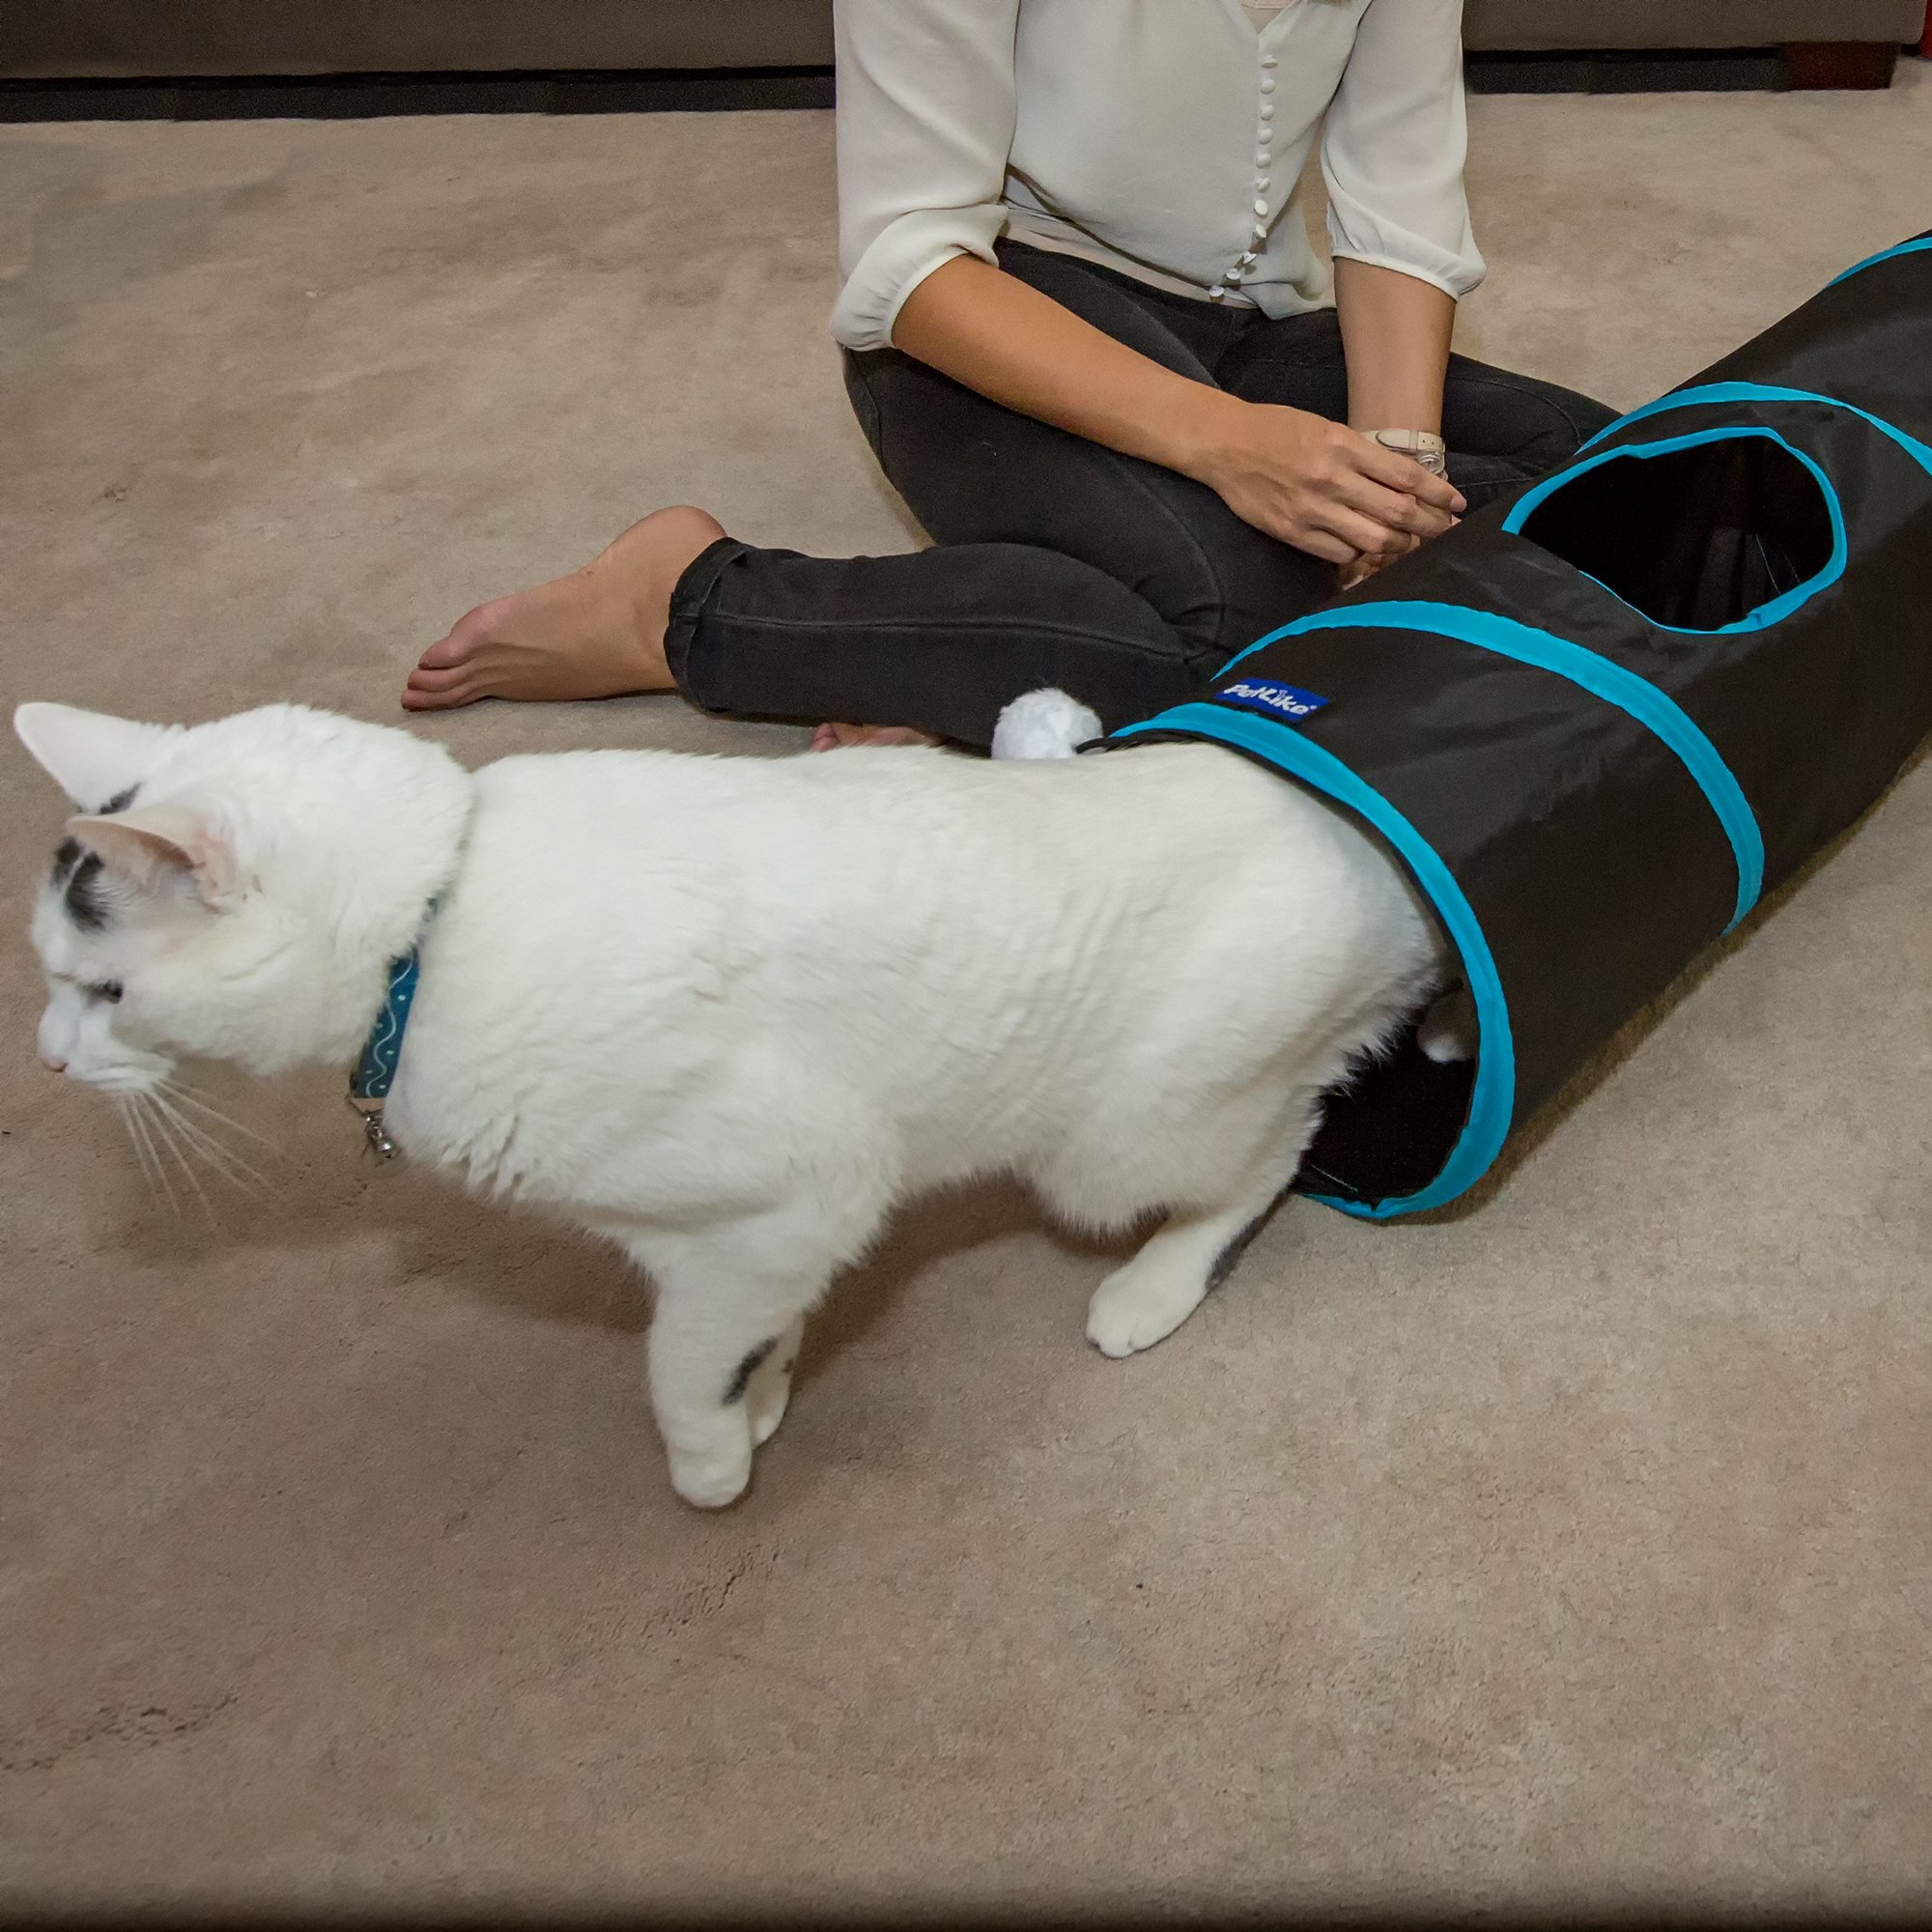 PetLike Deluxe Collapsible Cat Tunnel Toy By Pet Tube For Kittens, Puppies, Rabbits And Other Small-Sized Pets Fun And Durable Hideaway For Entertainment, Training, Exercise And Running by PetLike (Image #7)